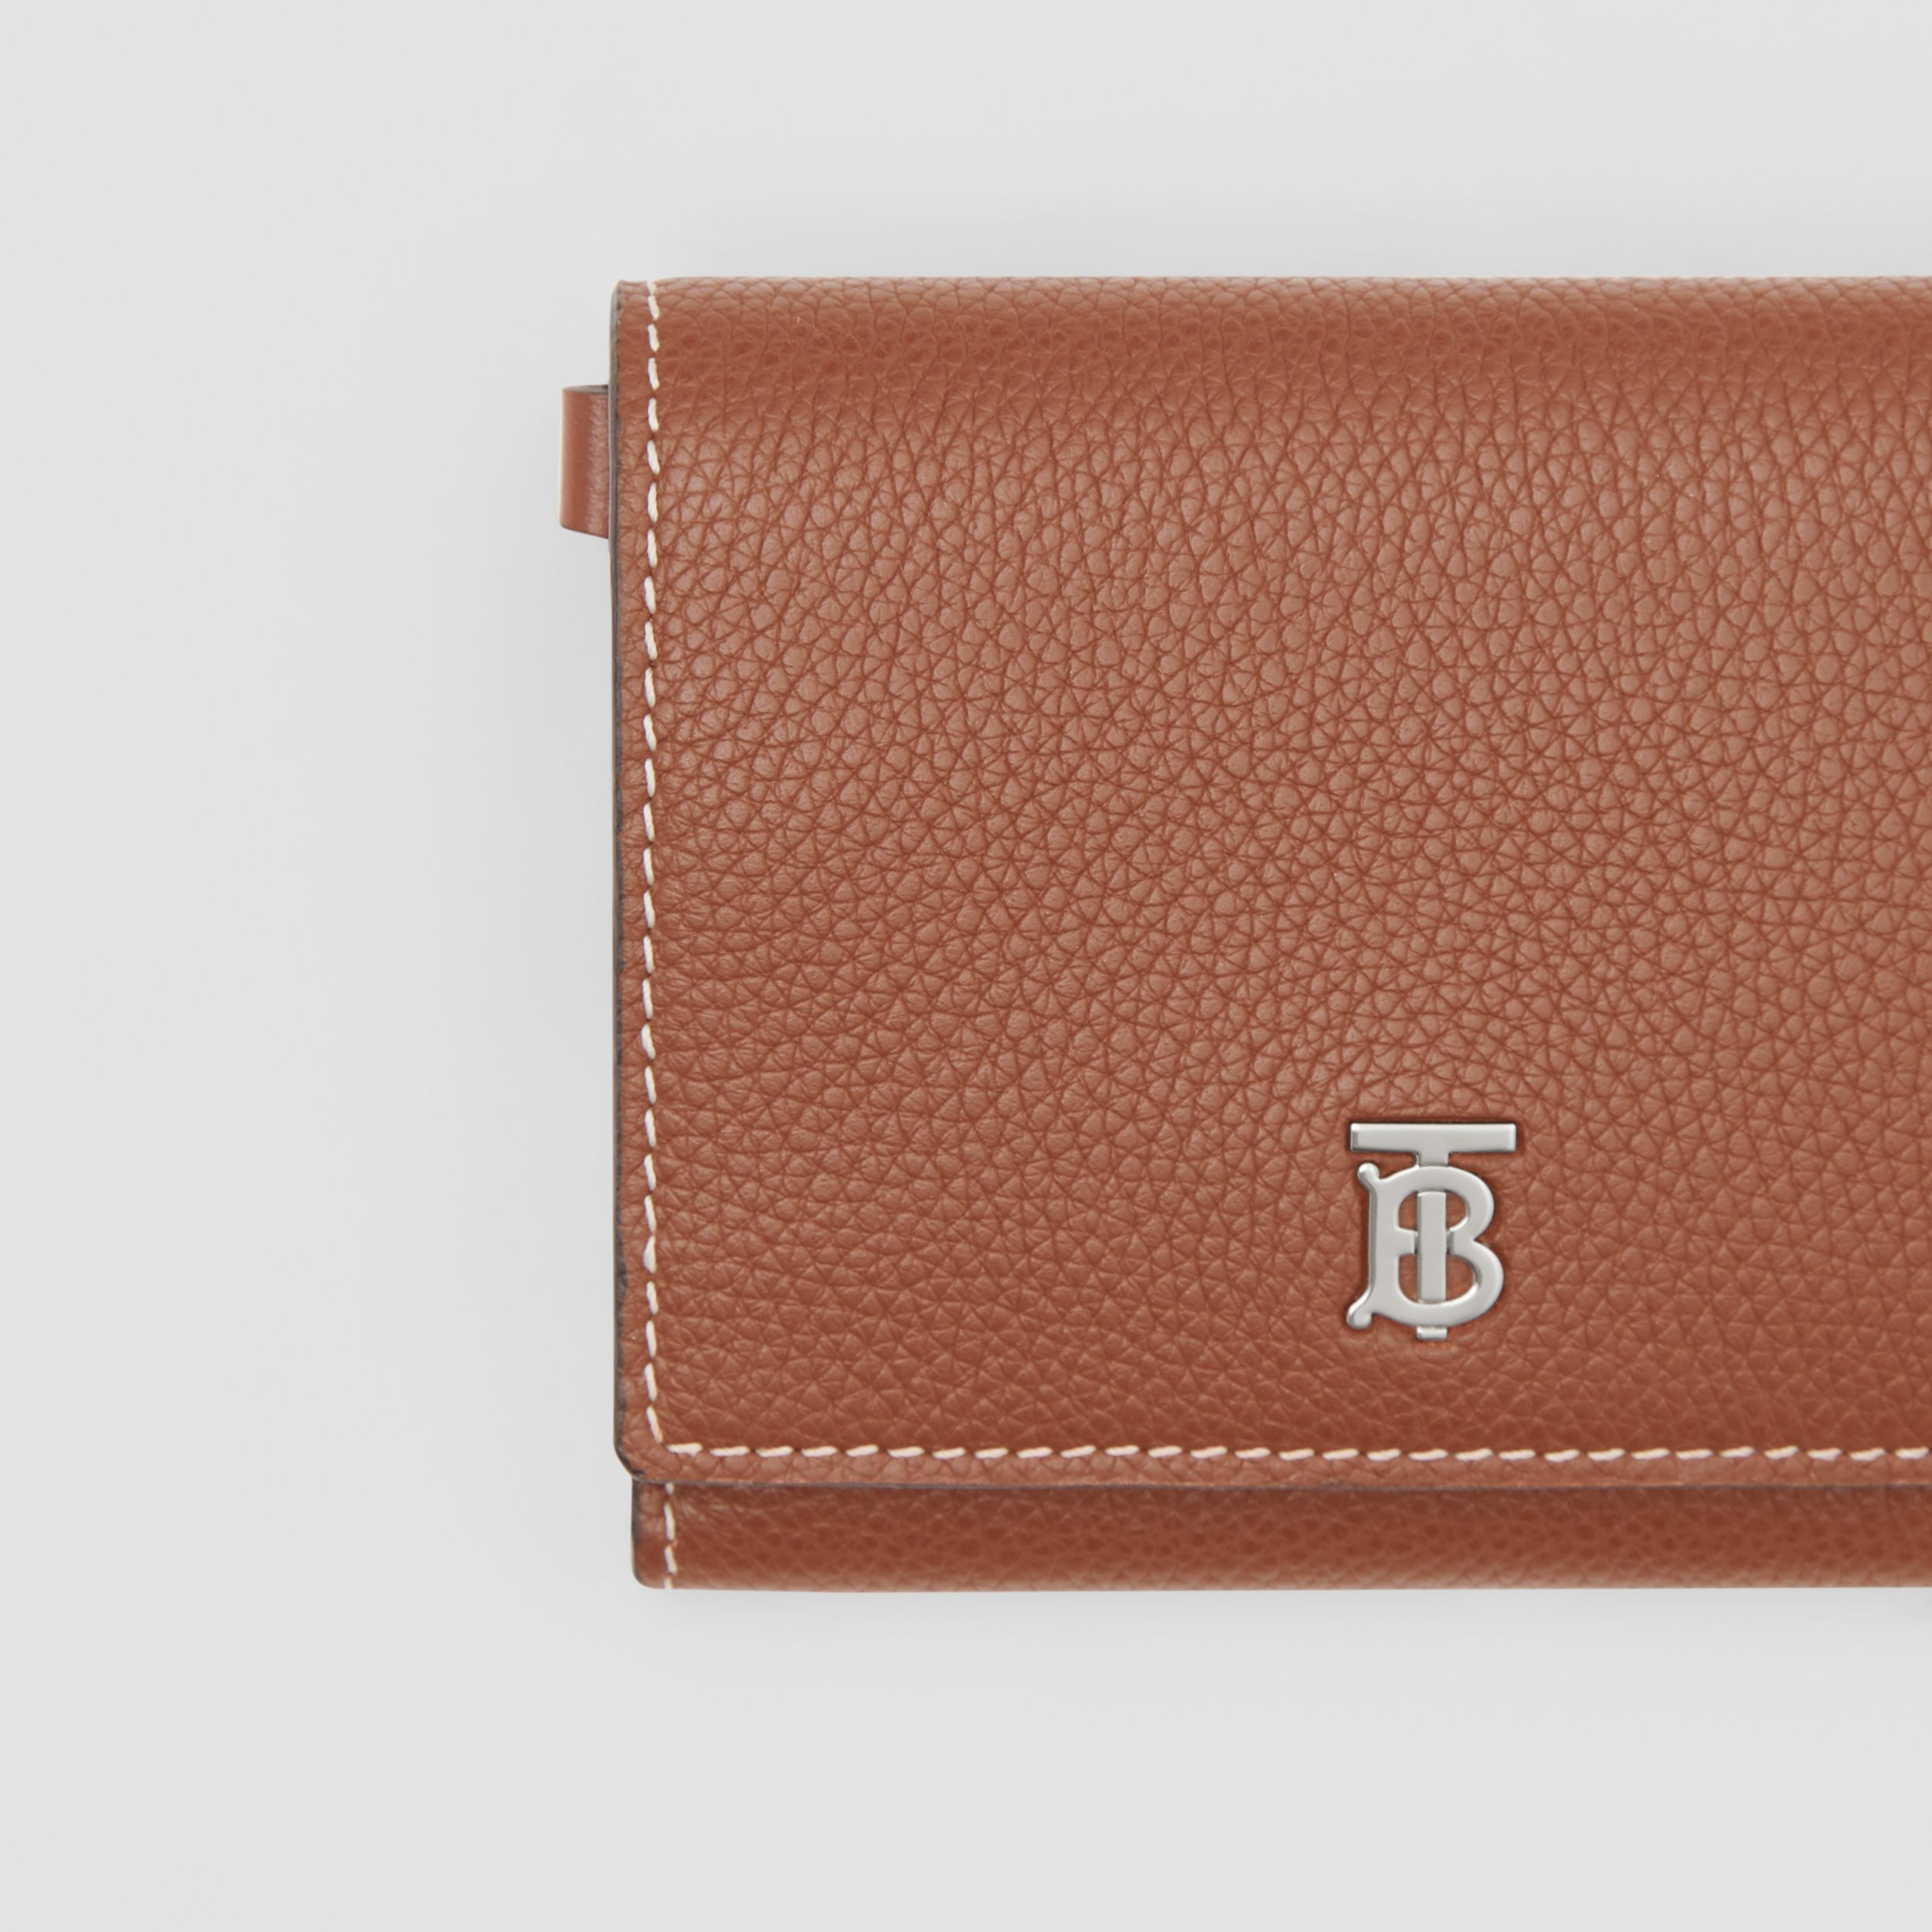 Small Grainy Leather Wallet with Detachable Strap in Tan | Burberry - 2